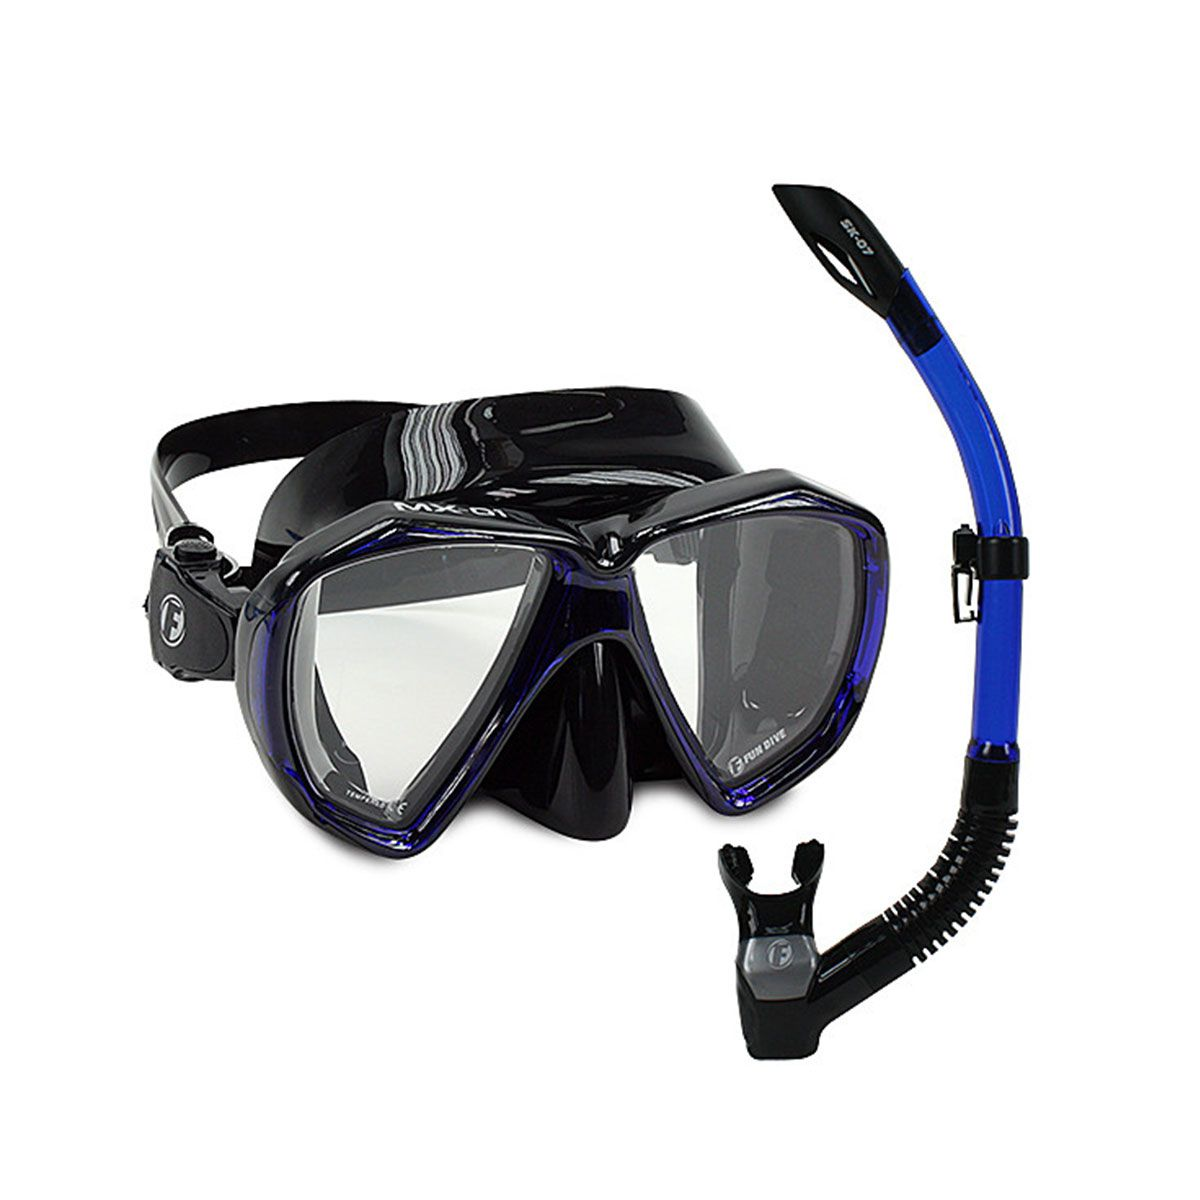 Kit de Mergulho MX-01 Fun Dive Máscara/Snorkel